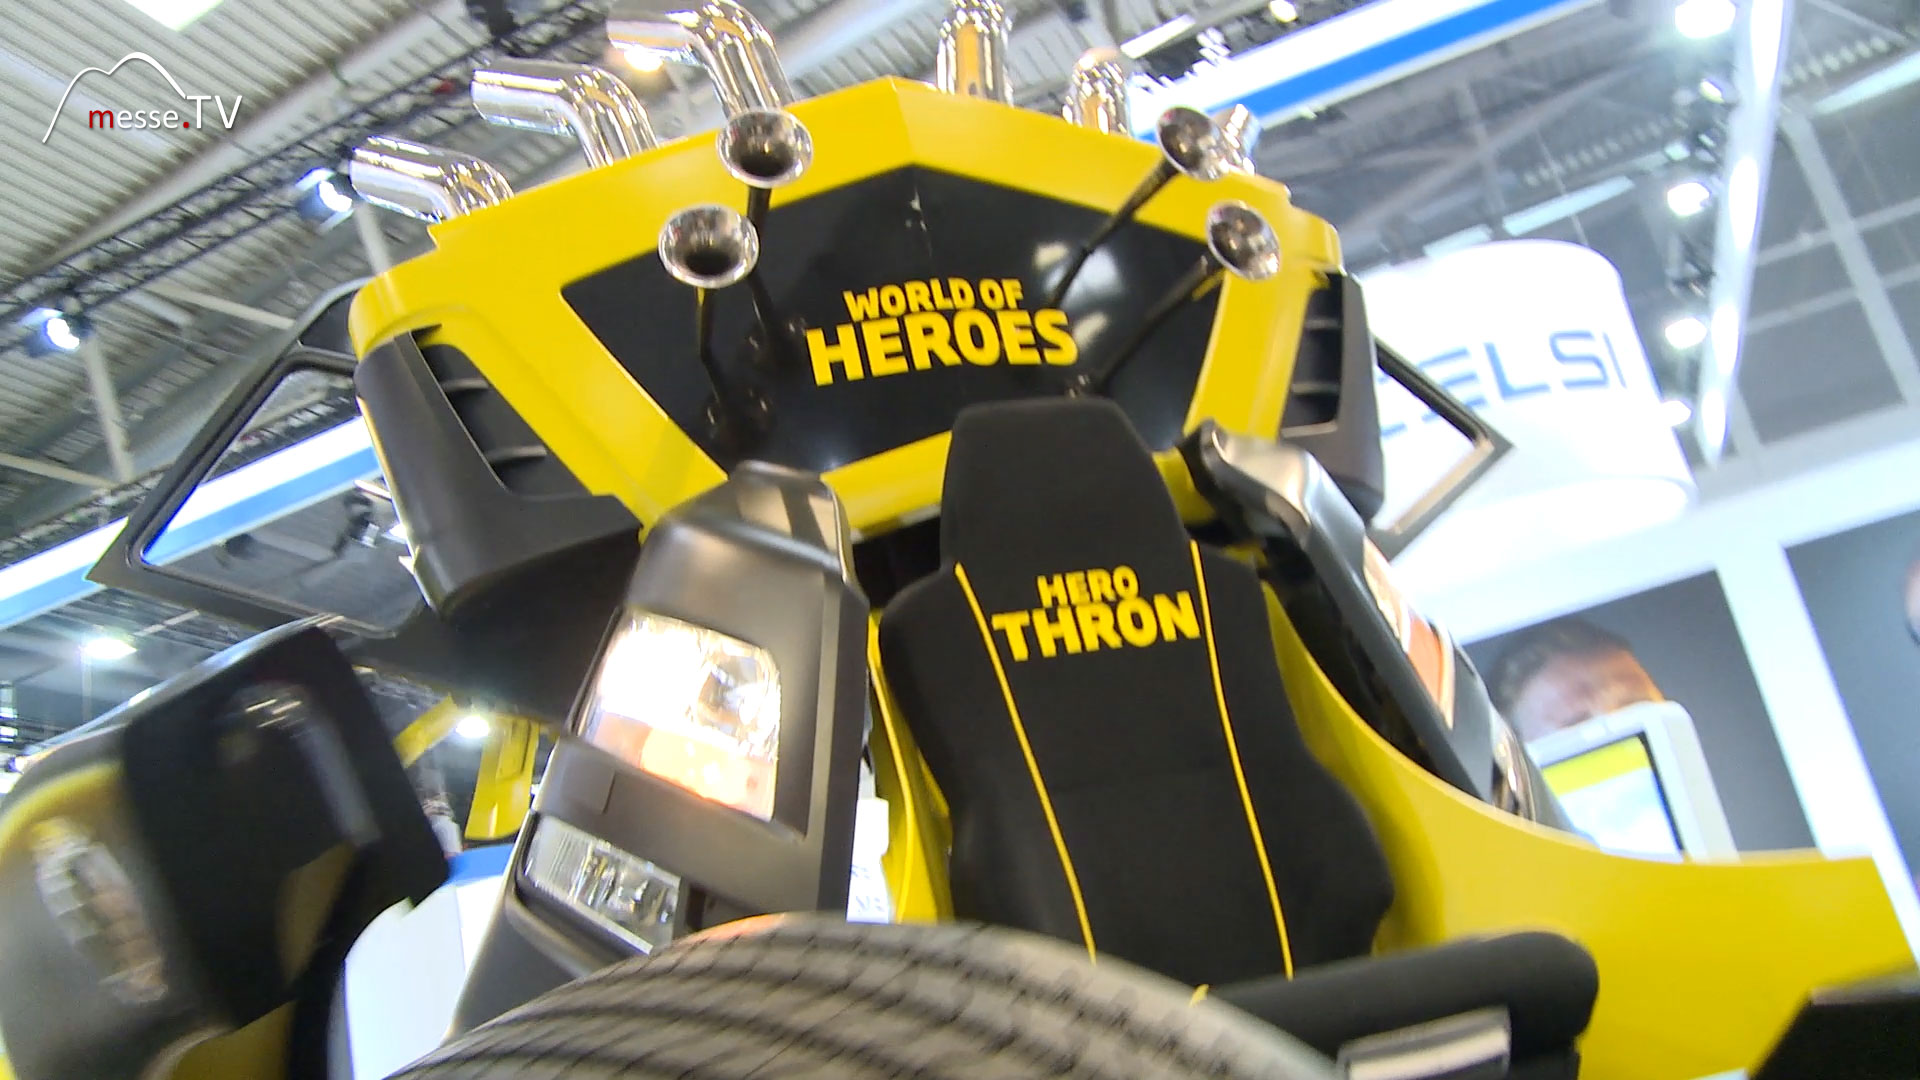 TRUCK JOBS World of Heroes Thron am Messestand